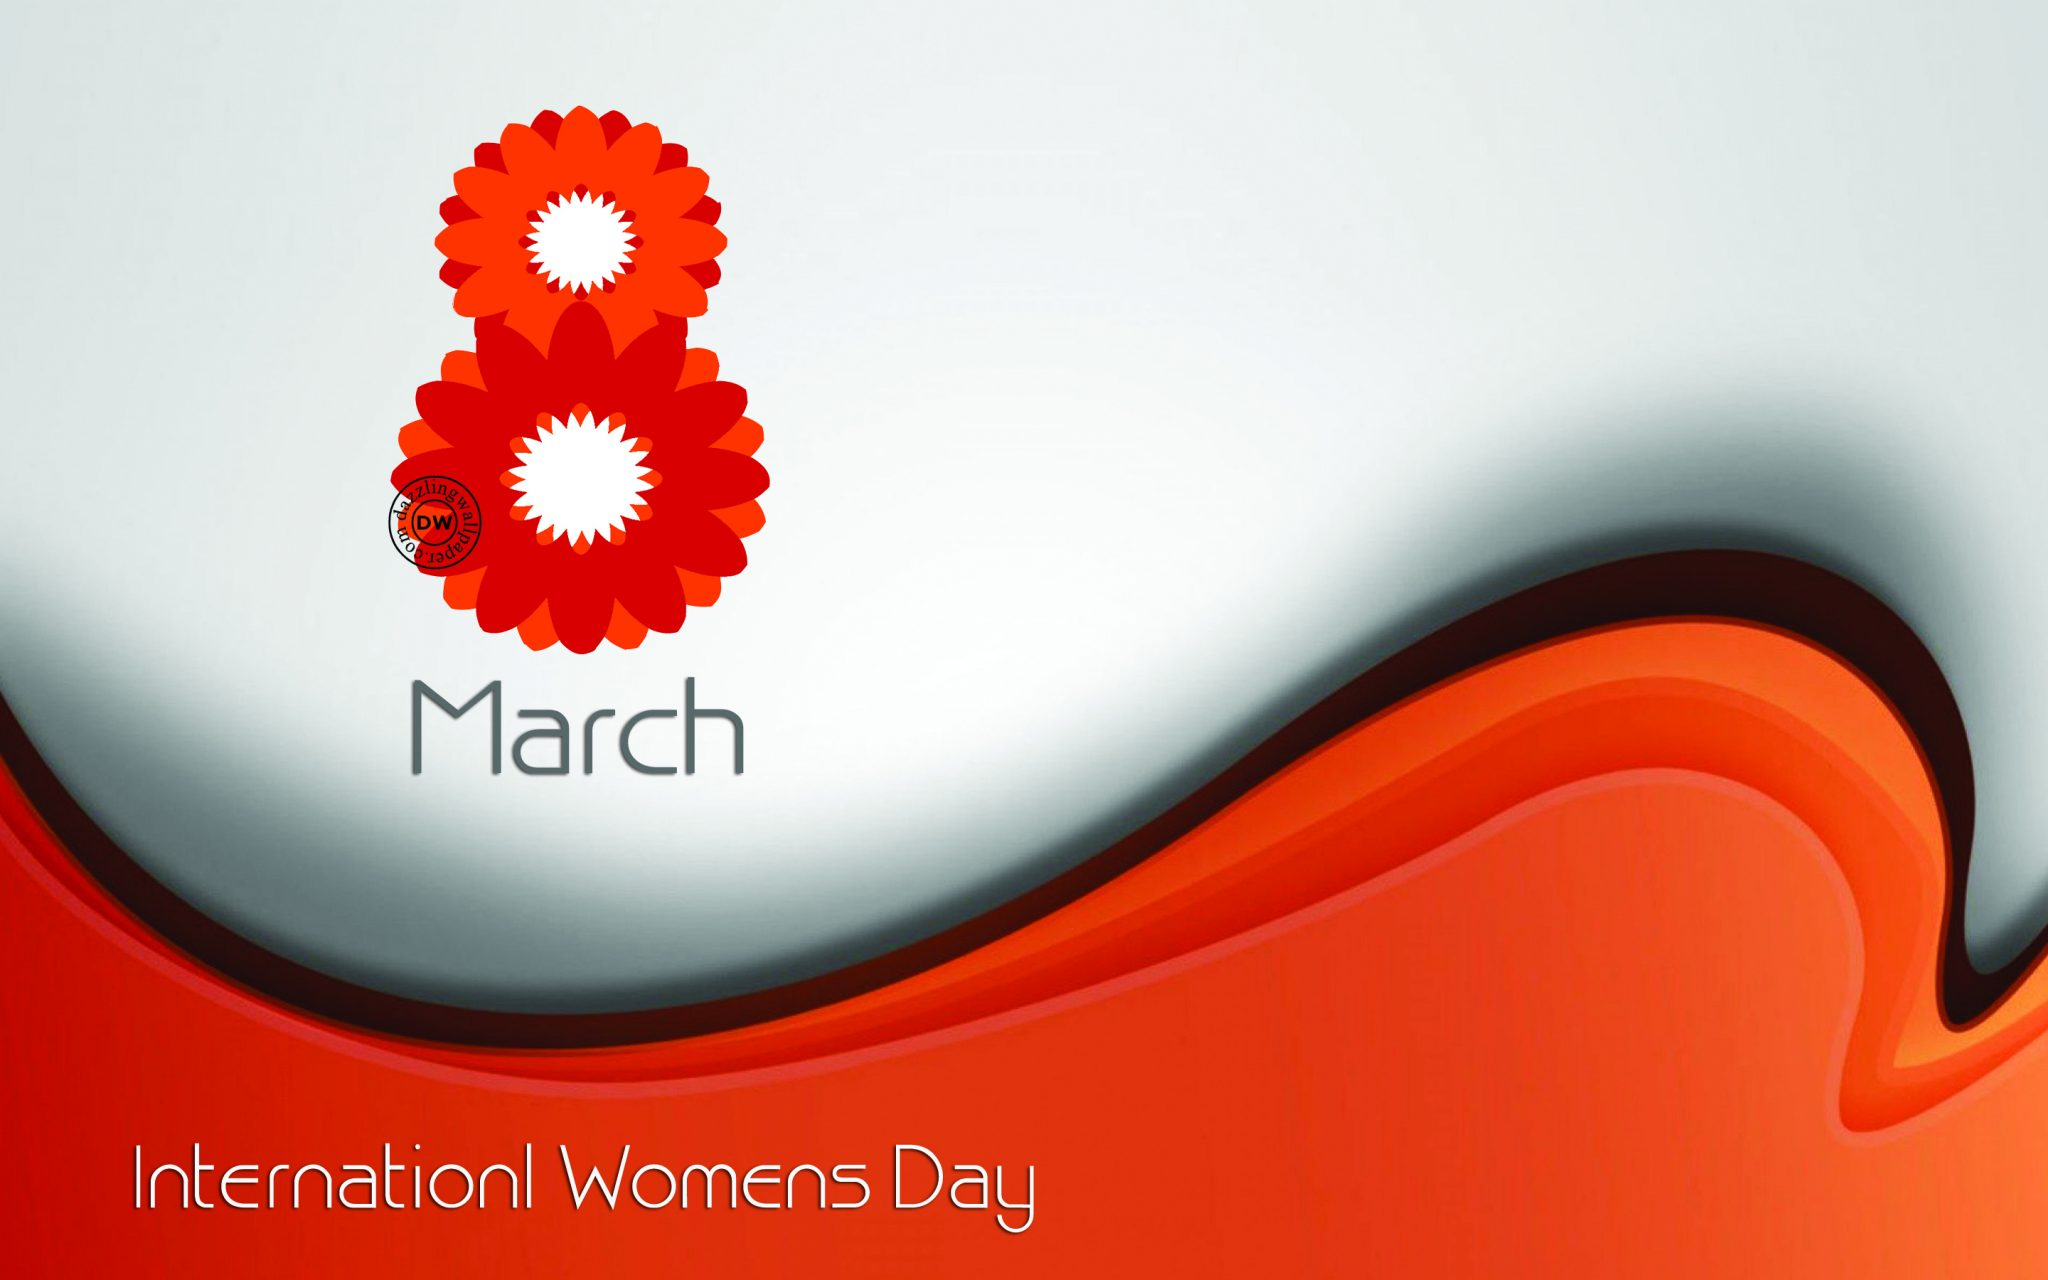 Hapy-International-Womens-Day-backgrounds-02